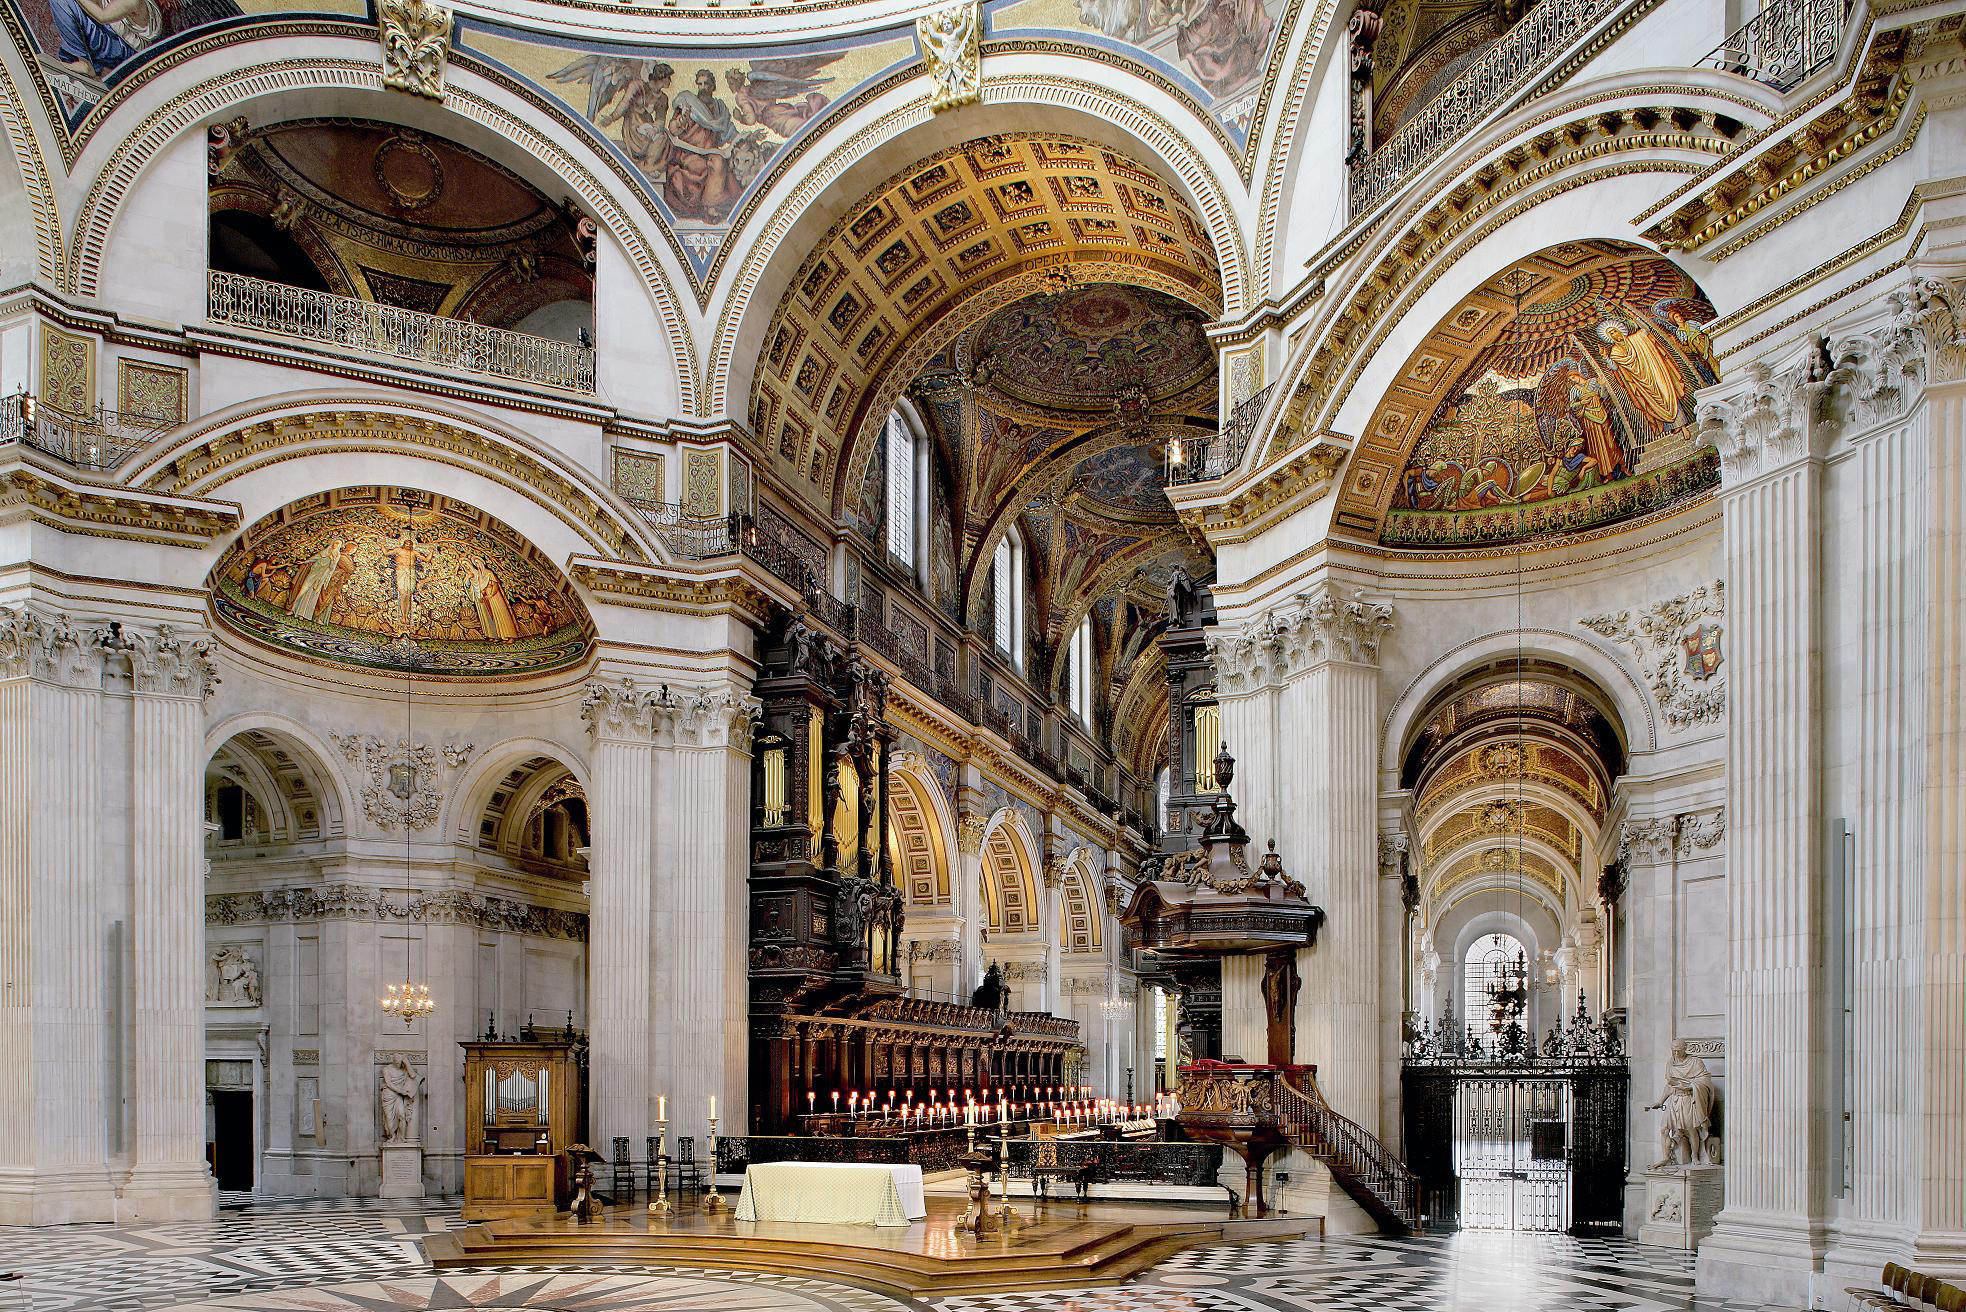 Squaremeal Venues and Events newsletter 30 March 2017 - searcys st paul's cathedral